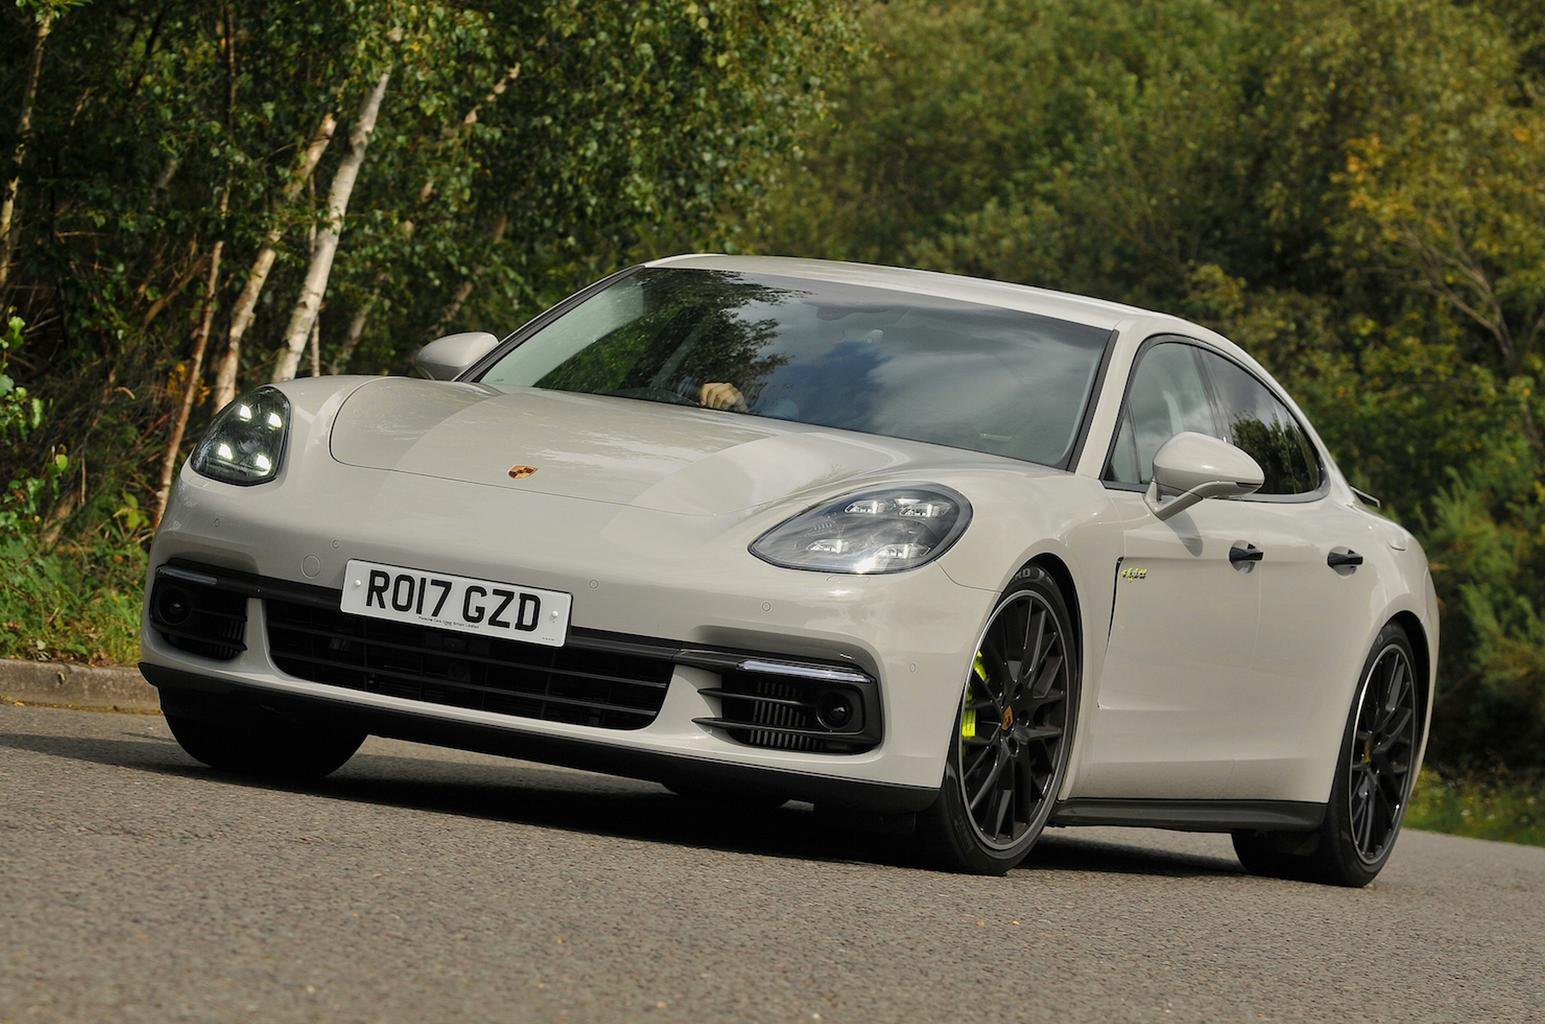 2017 Porsche Panamera 4 E Hybrid Review Price Specs And Release Date